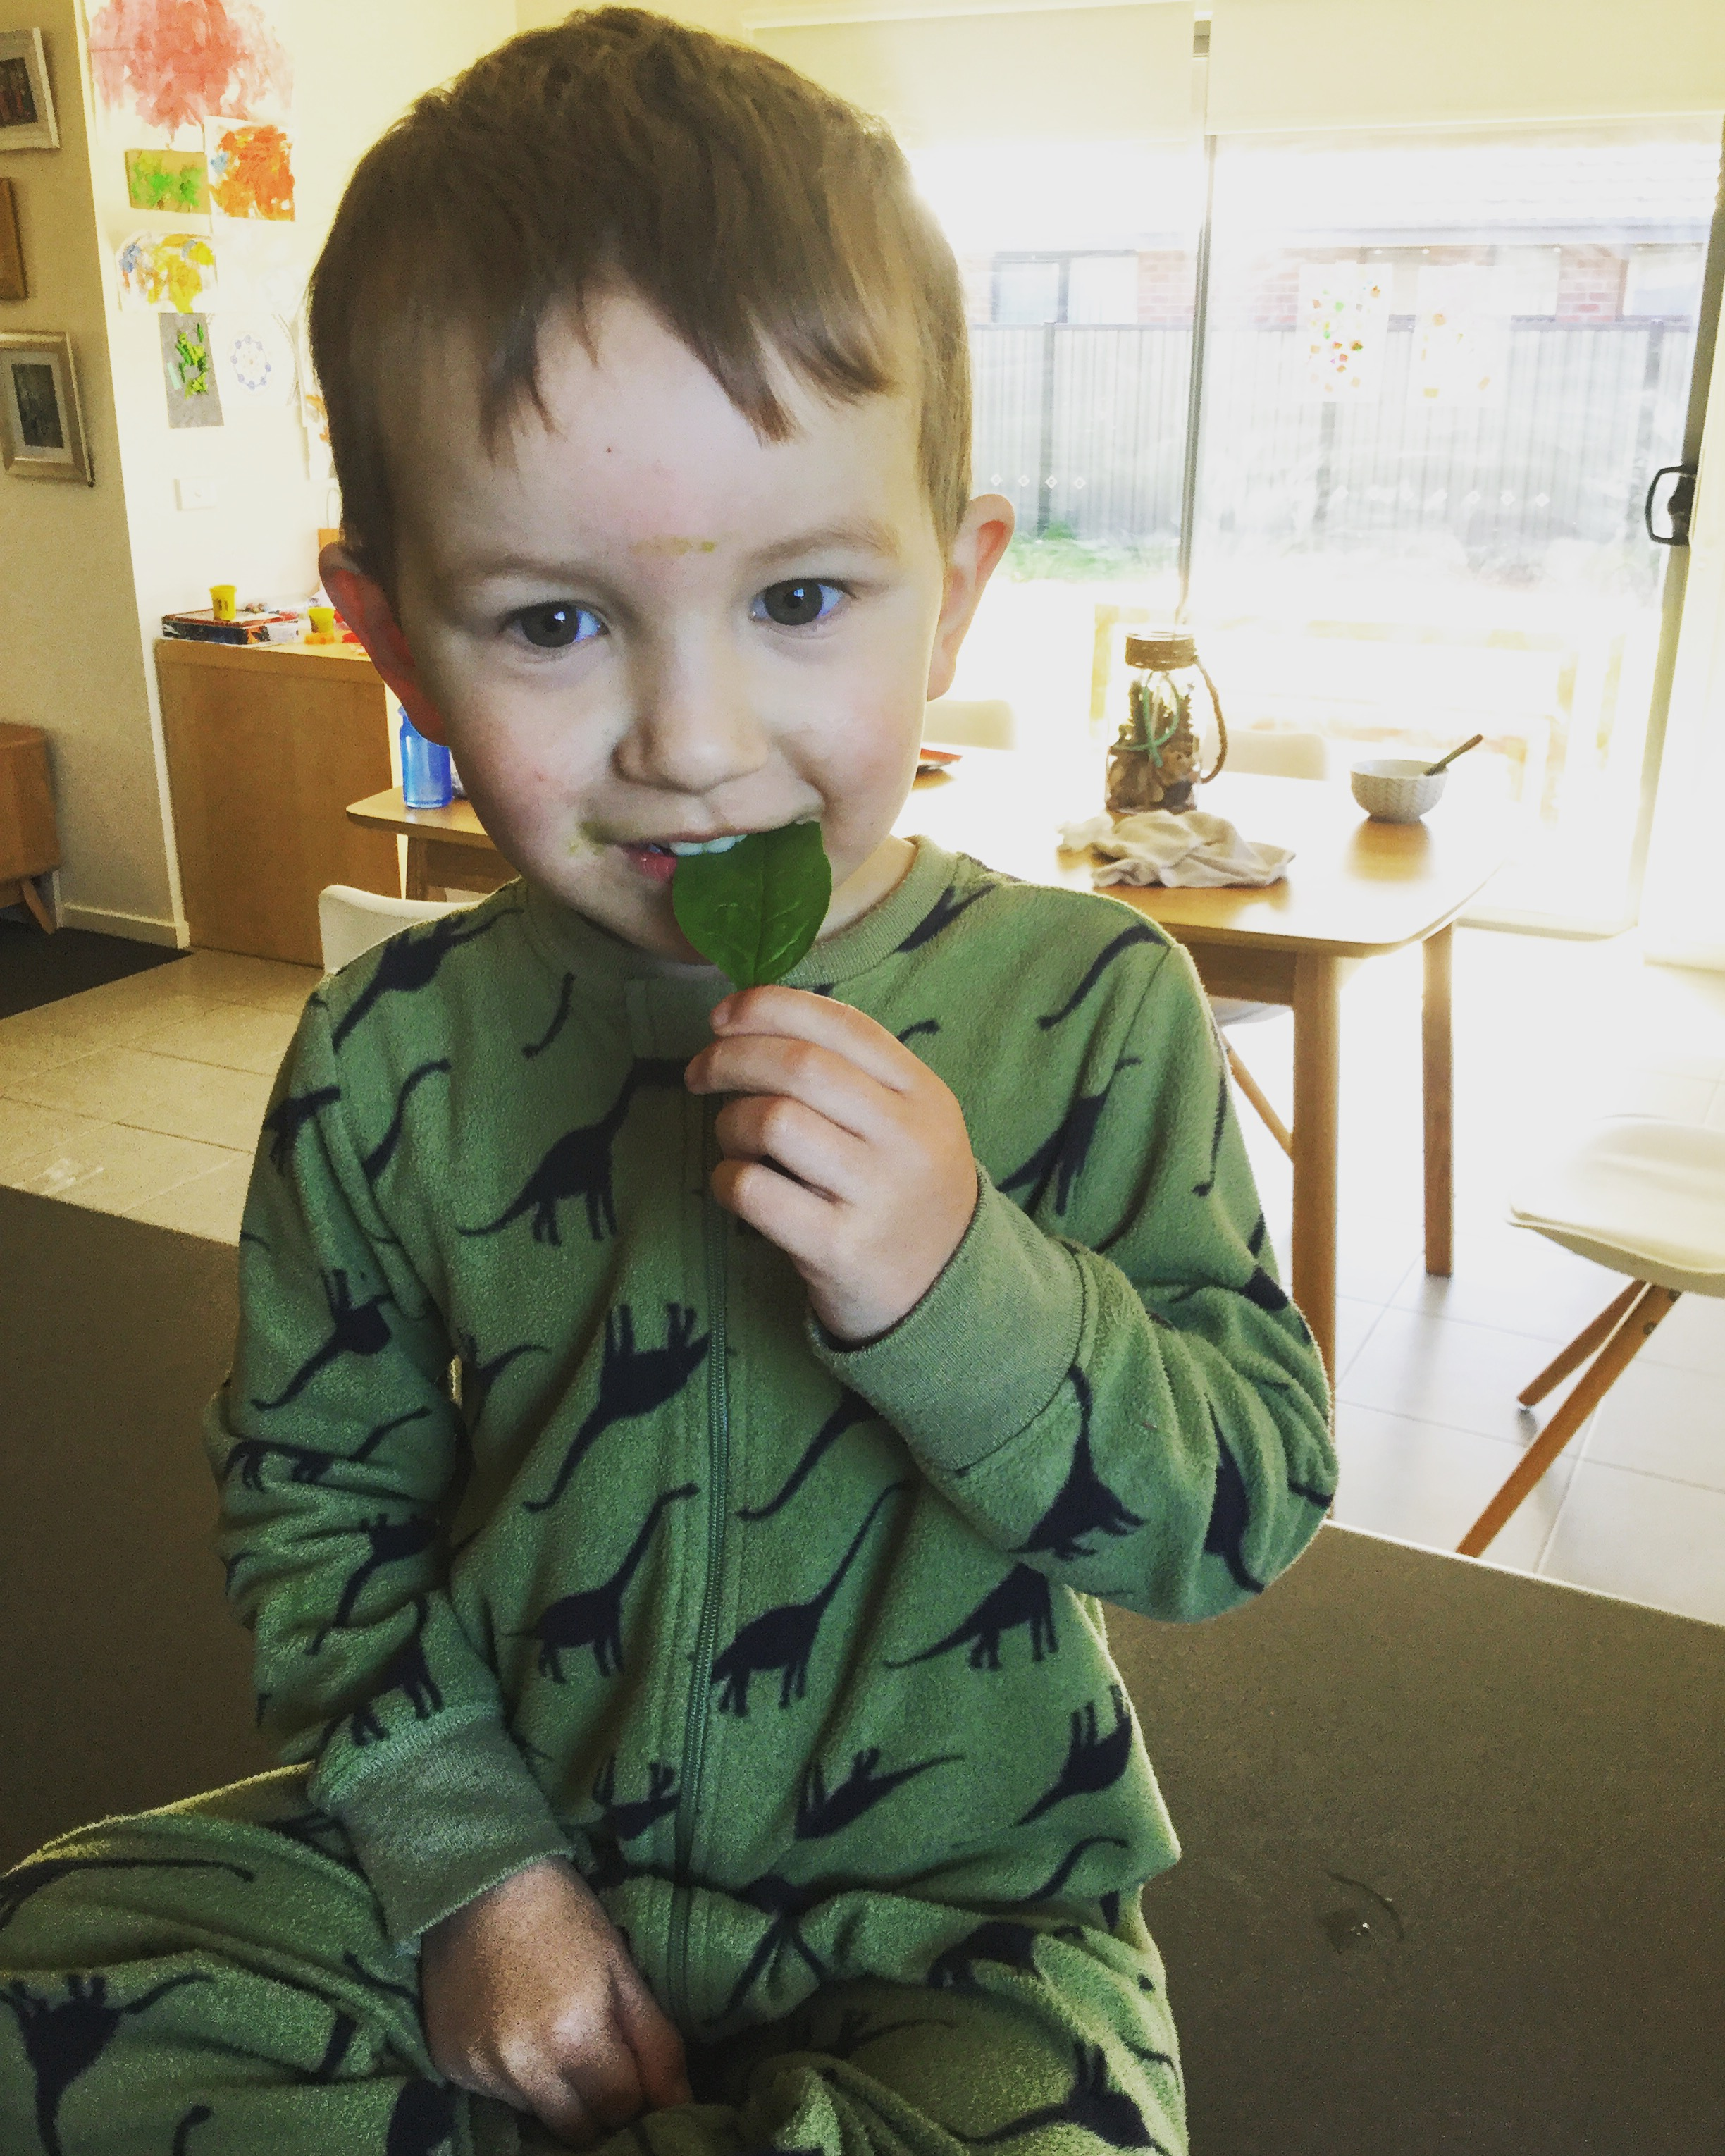 Toddler ating a super green food for the first time